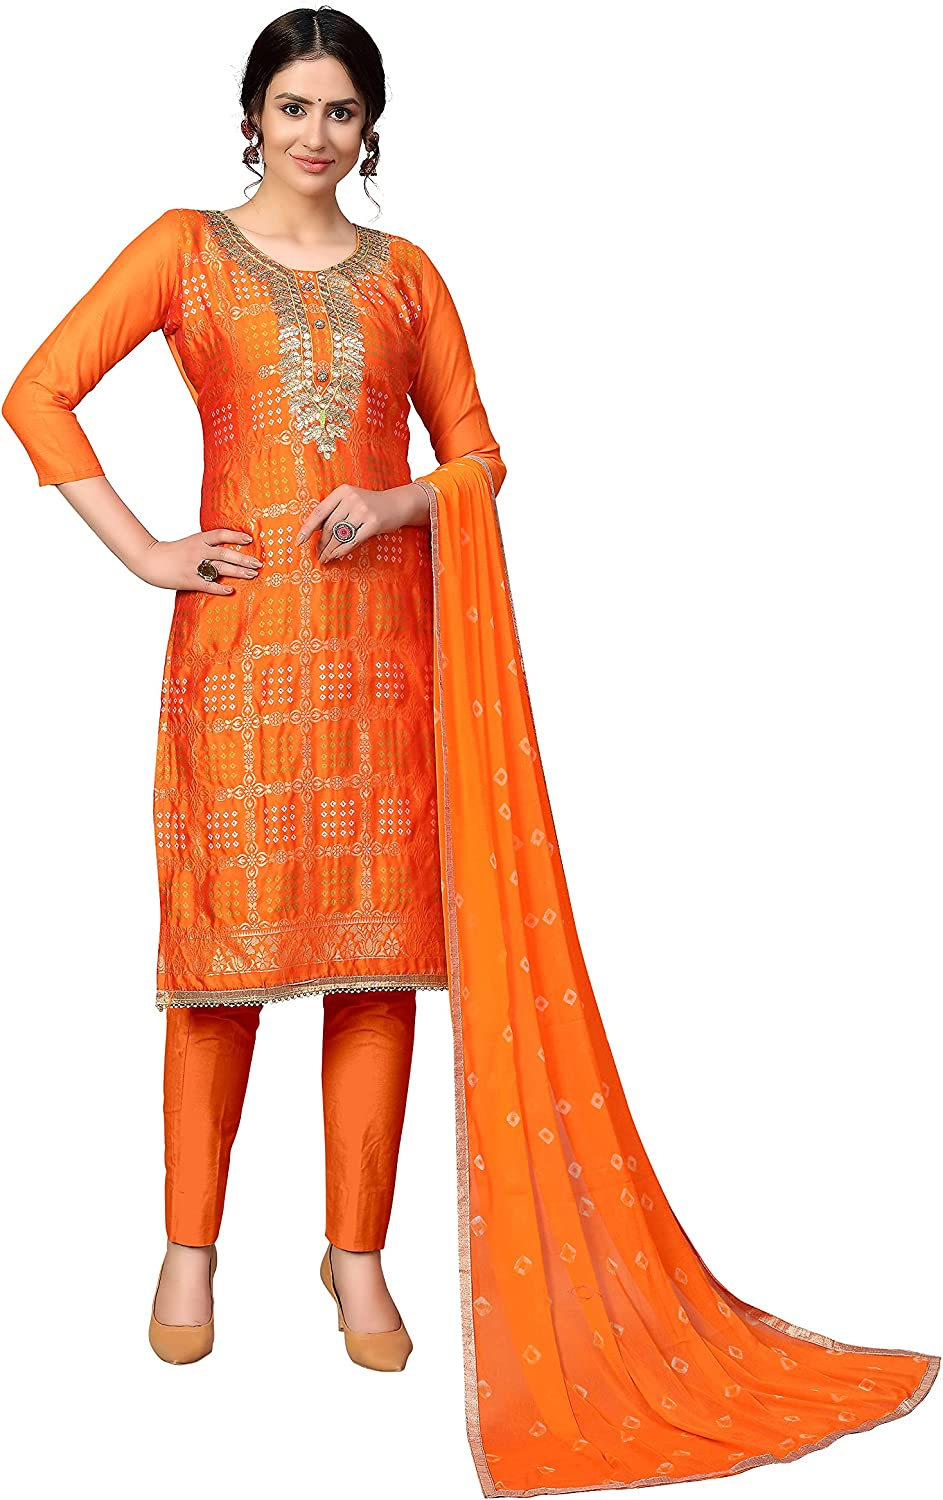 SB Traders Readymade Salwar Suit for Women Indian Style Cotton Fabric Salwar Suit with Dupatta